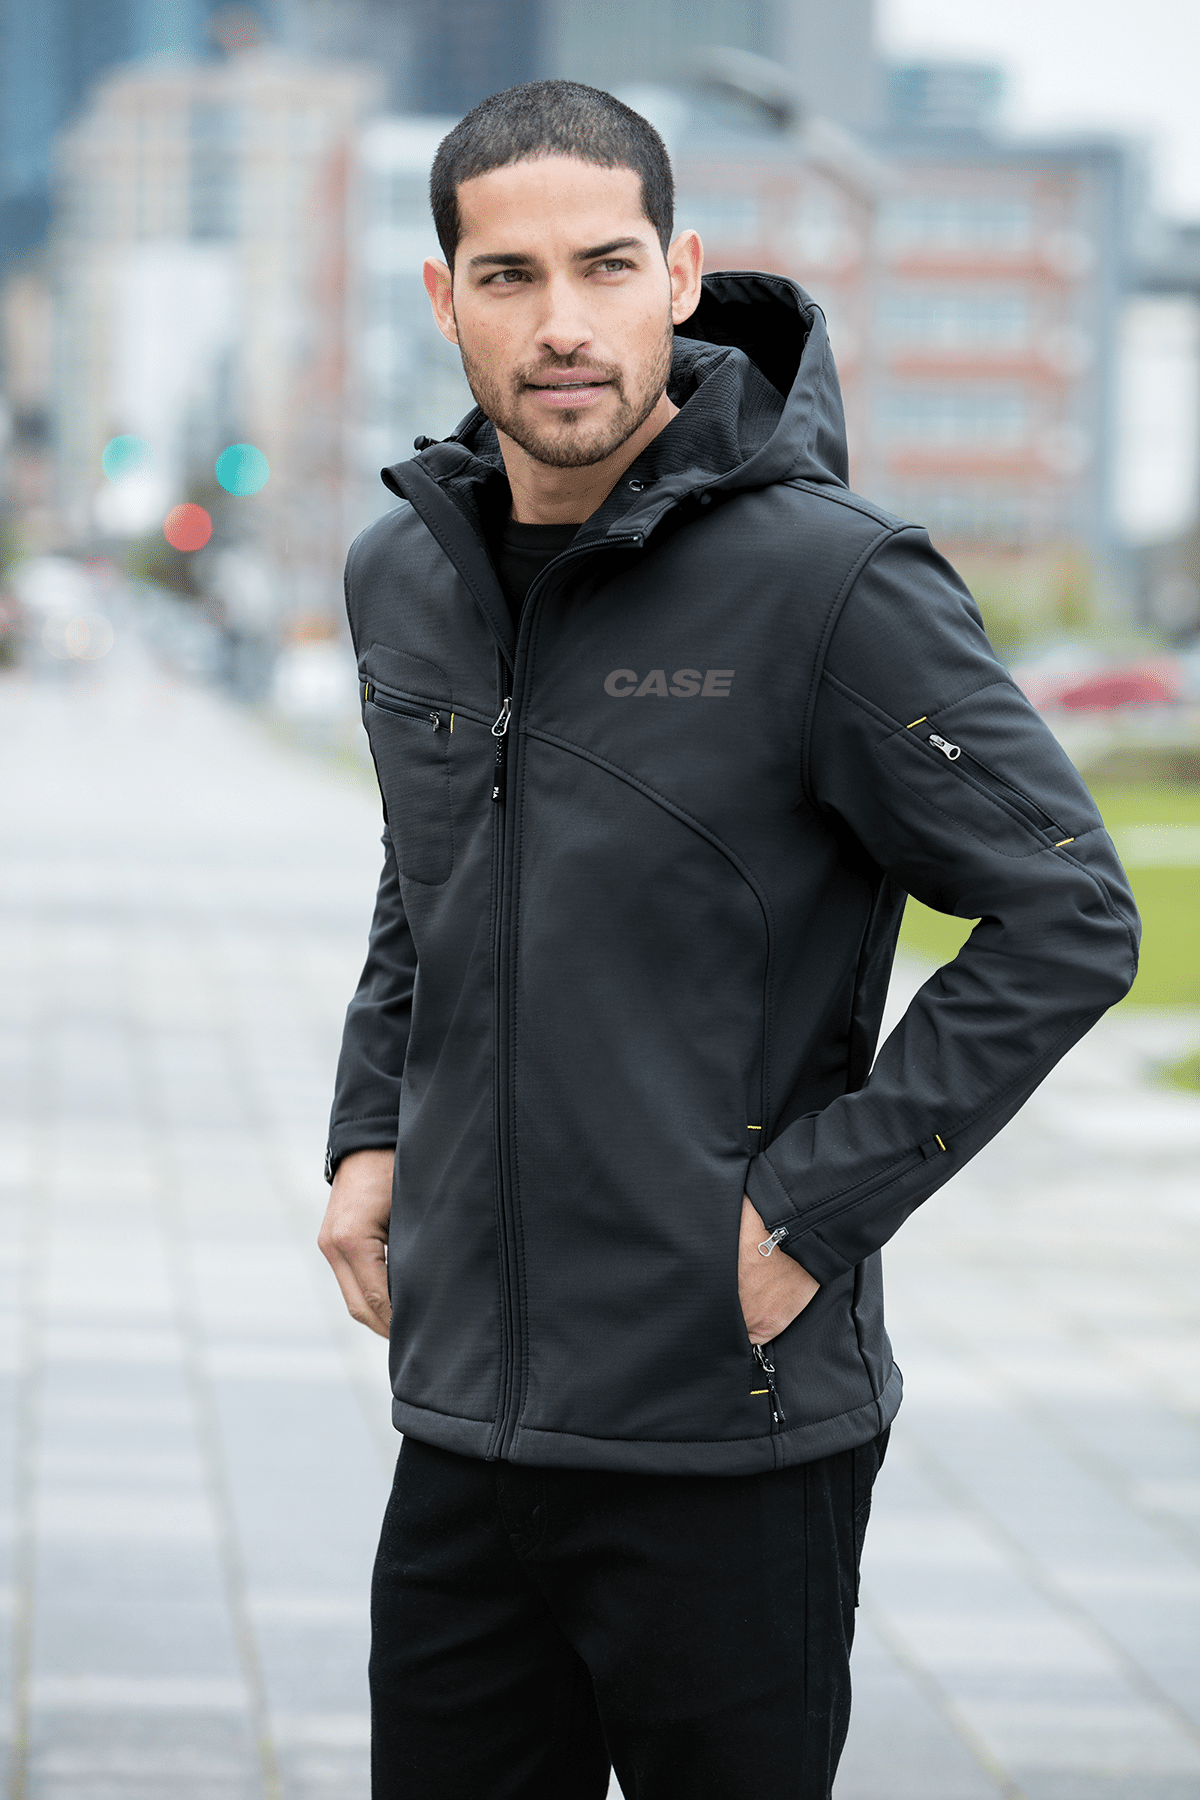 Columbia Jacket Collection - Workwear